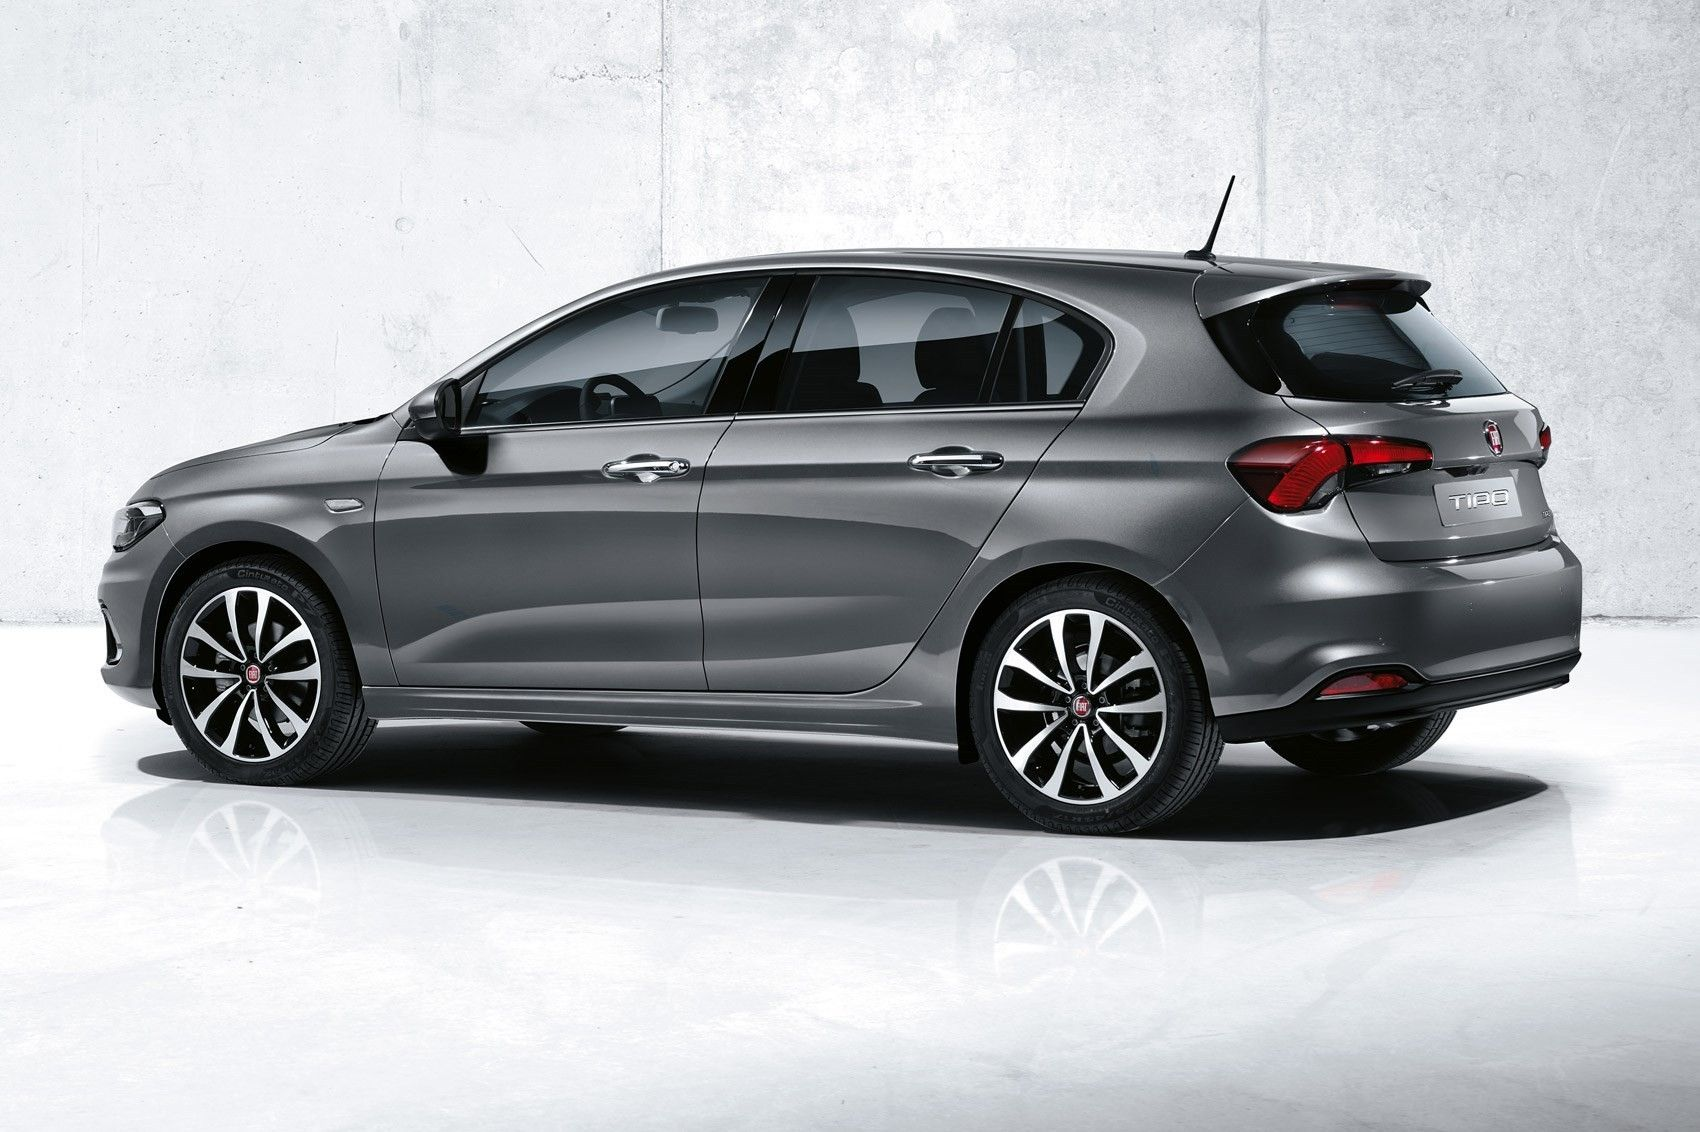 Fiat Tipo 2019 Redesign And Price Check More At Https Carsprice